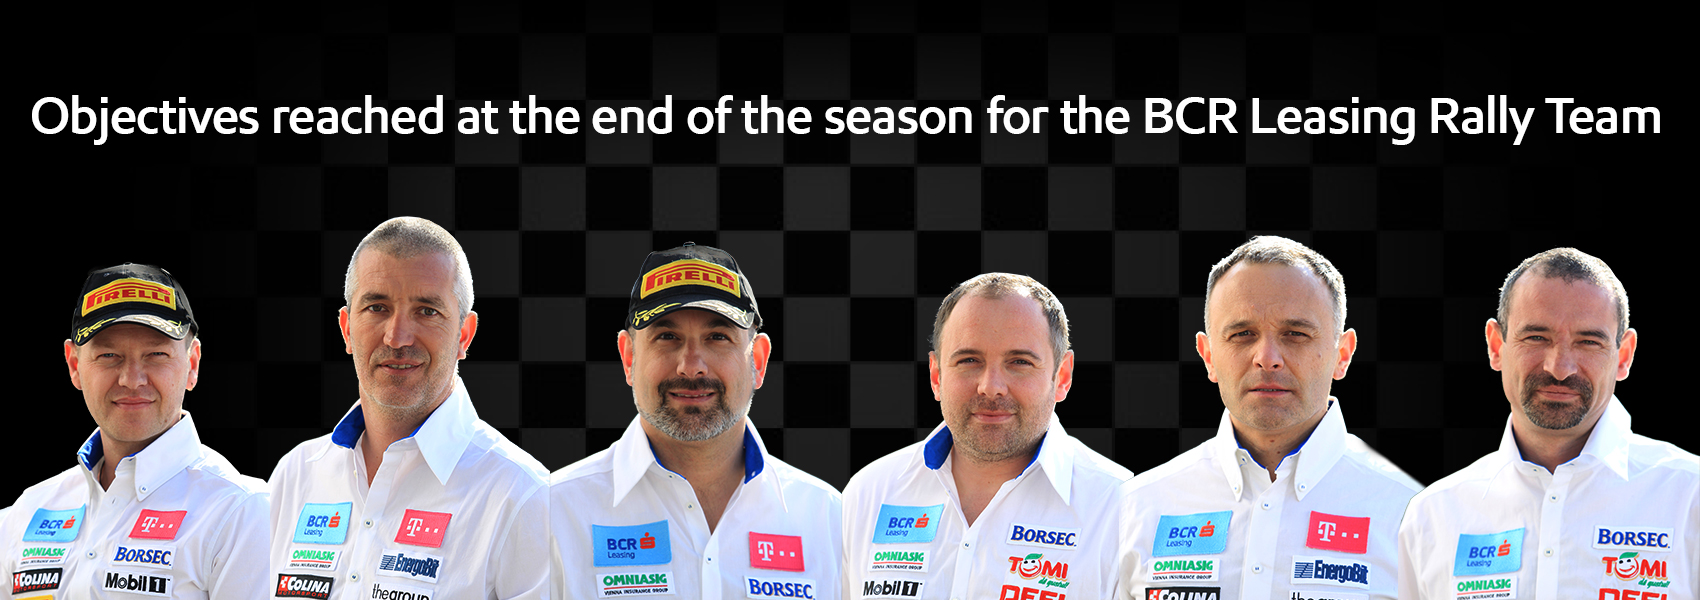 Objectives reached at the end of the season for the BCR Leasing Rally Team